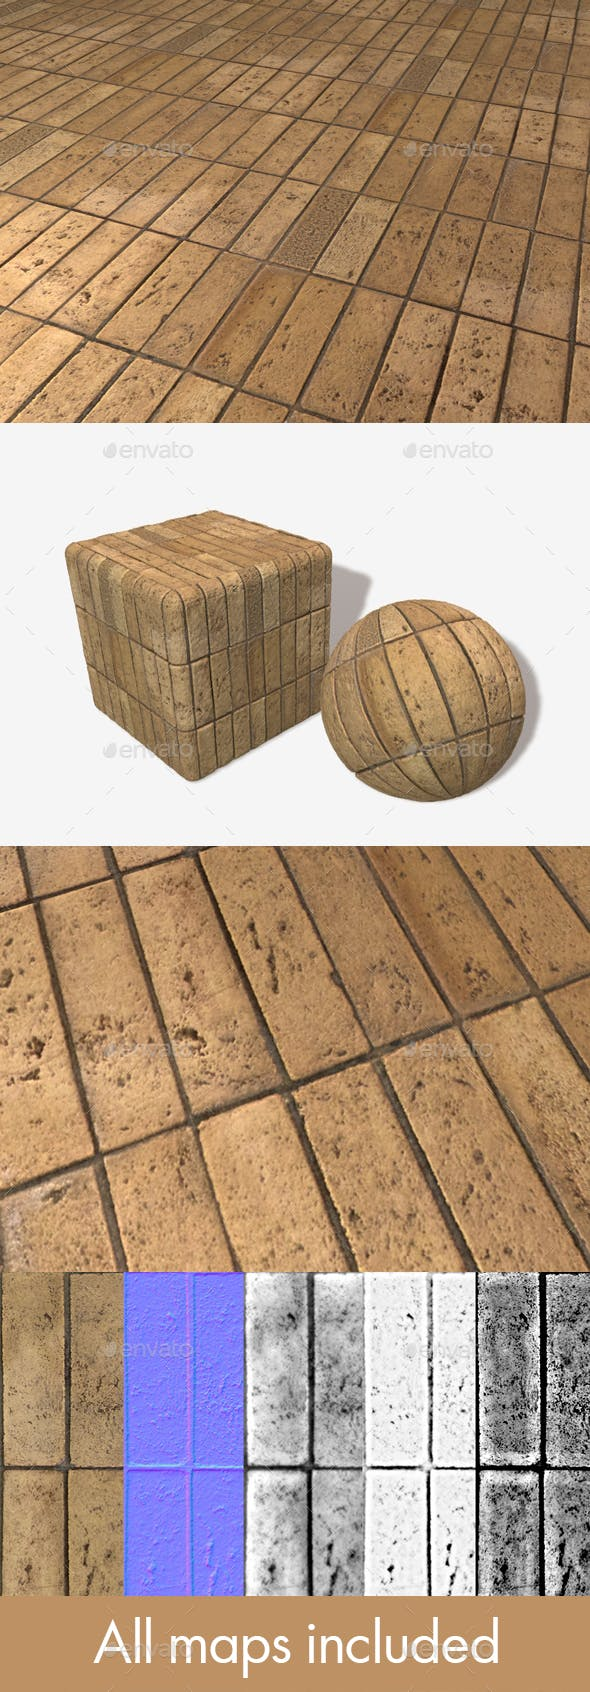 Uniform Brick Tiles Seamless Texture - 3DOcean Item for Sale